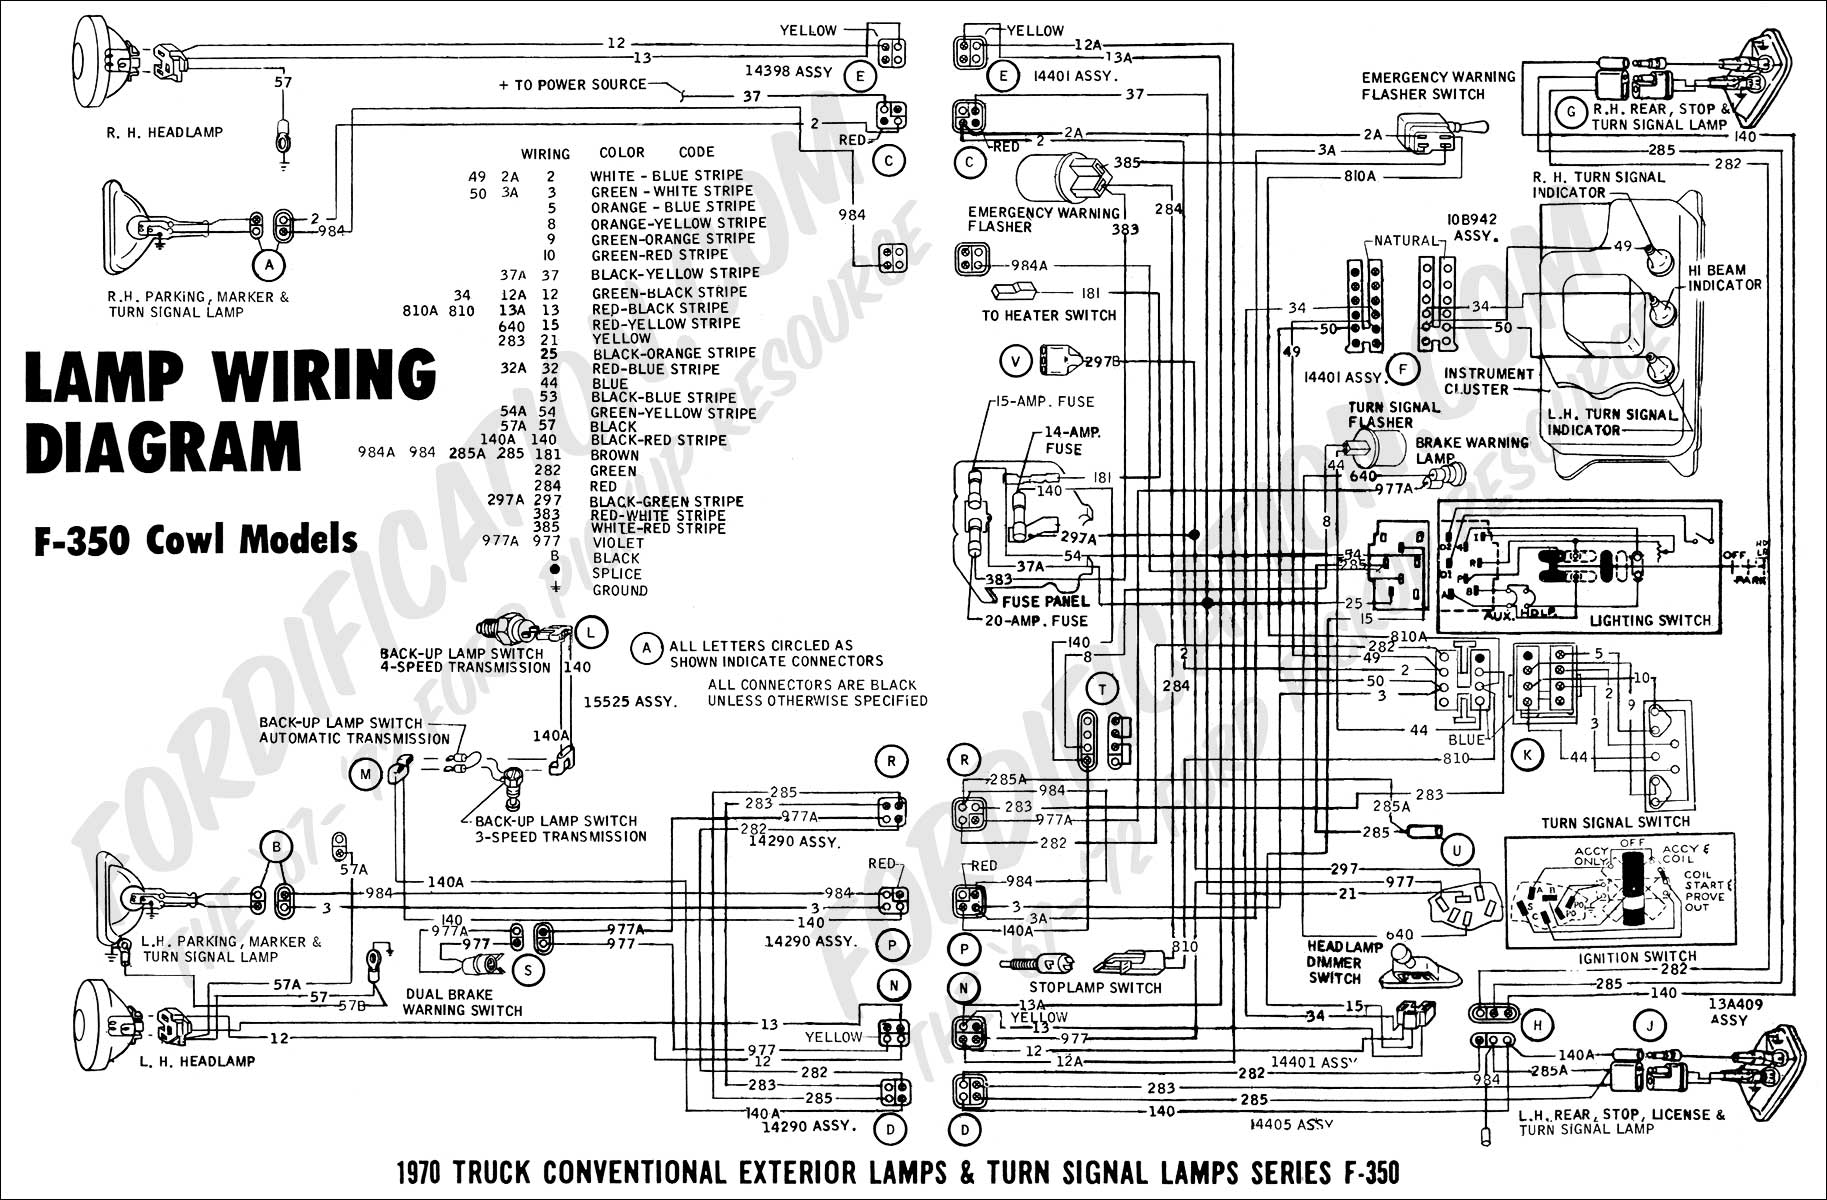 hight resolution of wiring diagram 70f350cowl lights01 www engineeringwellness com wp content uploads 201 mack rd688s wiring